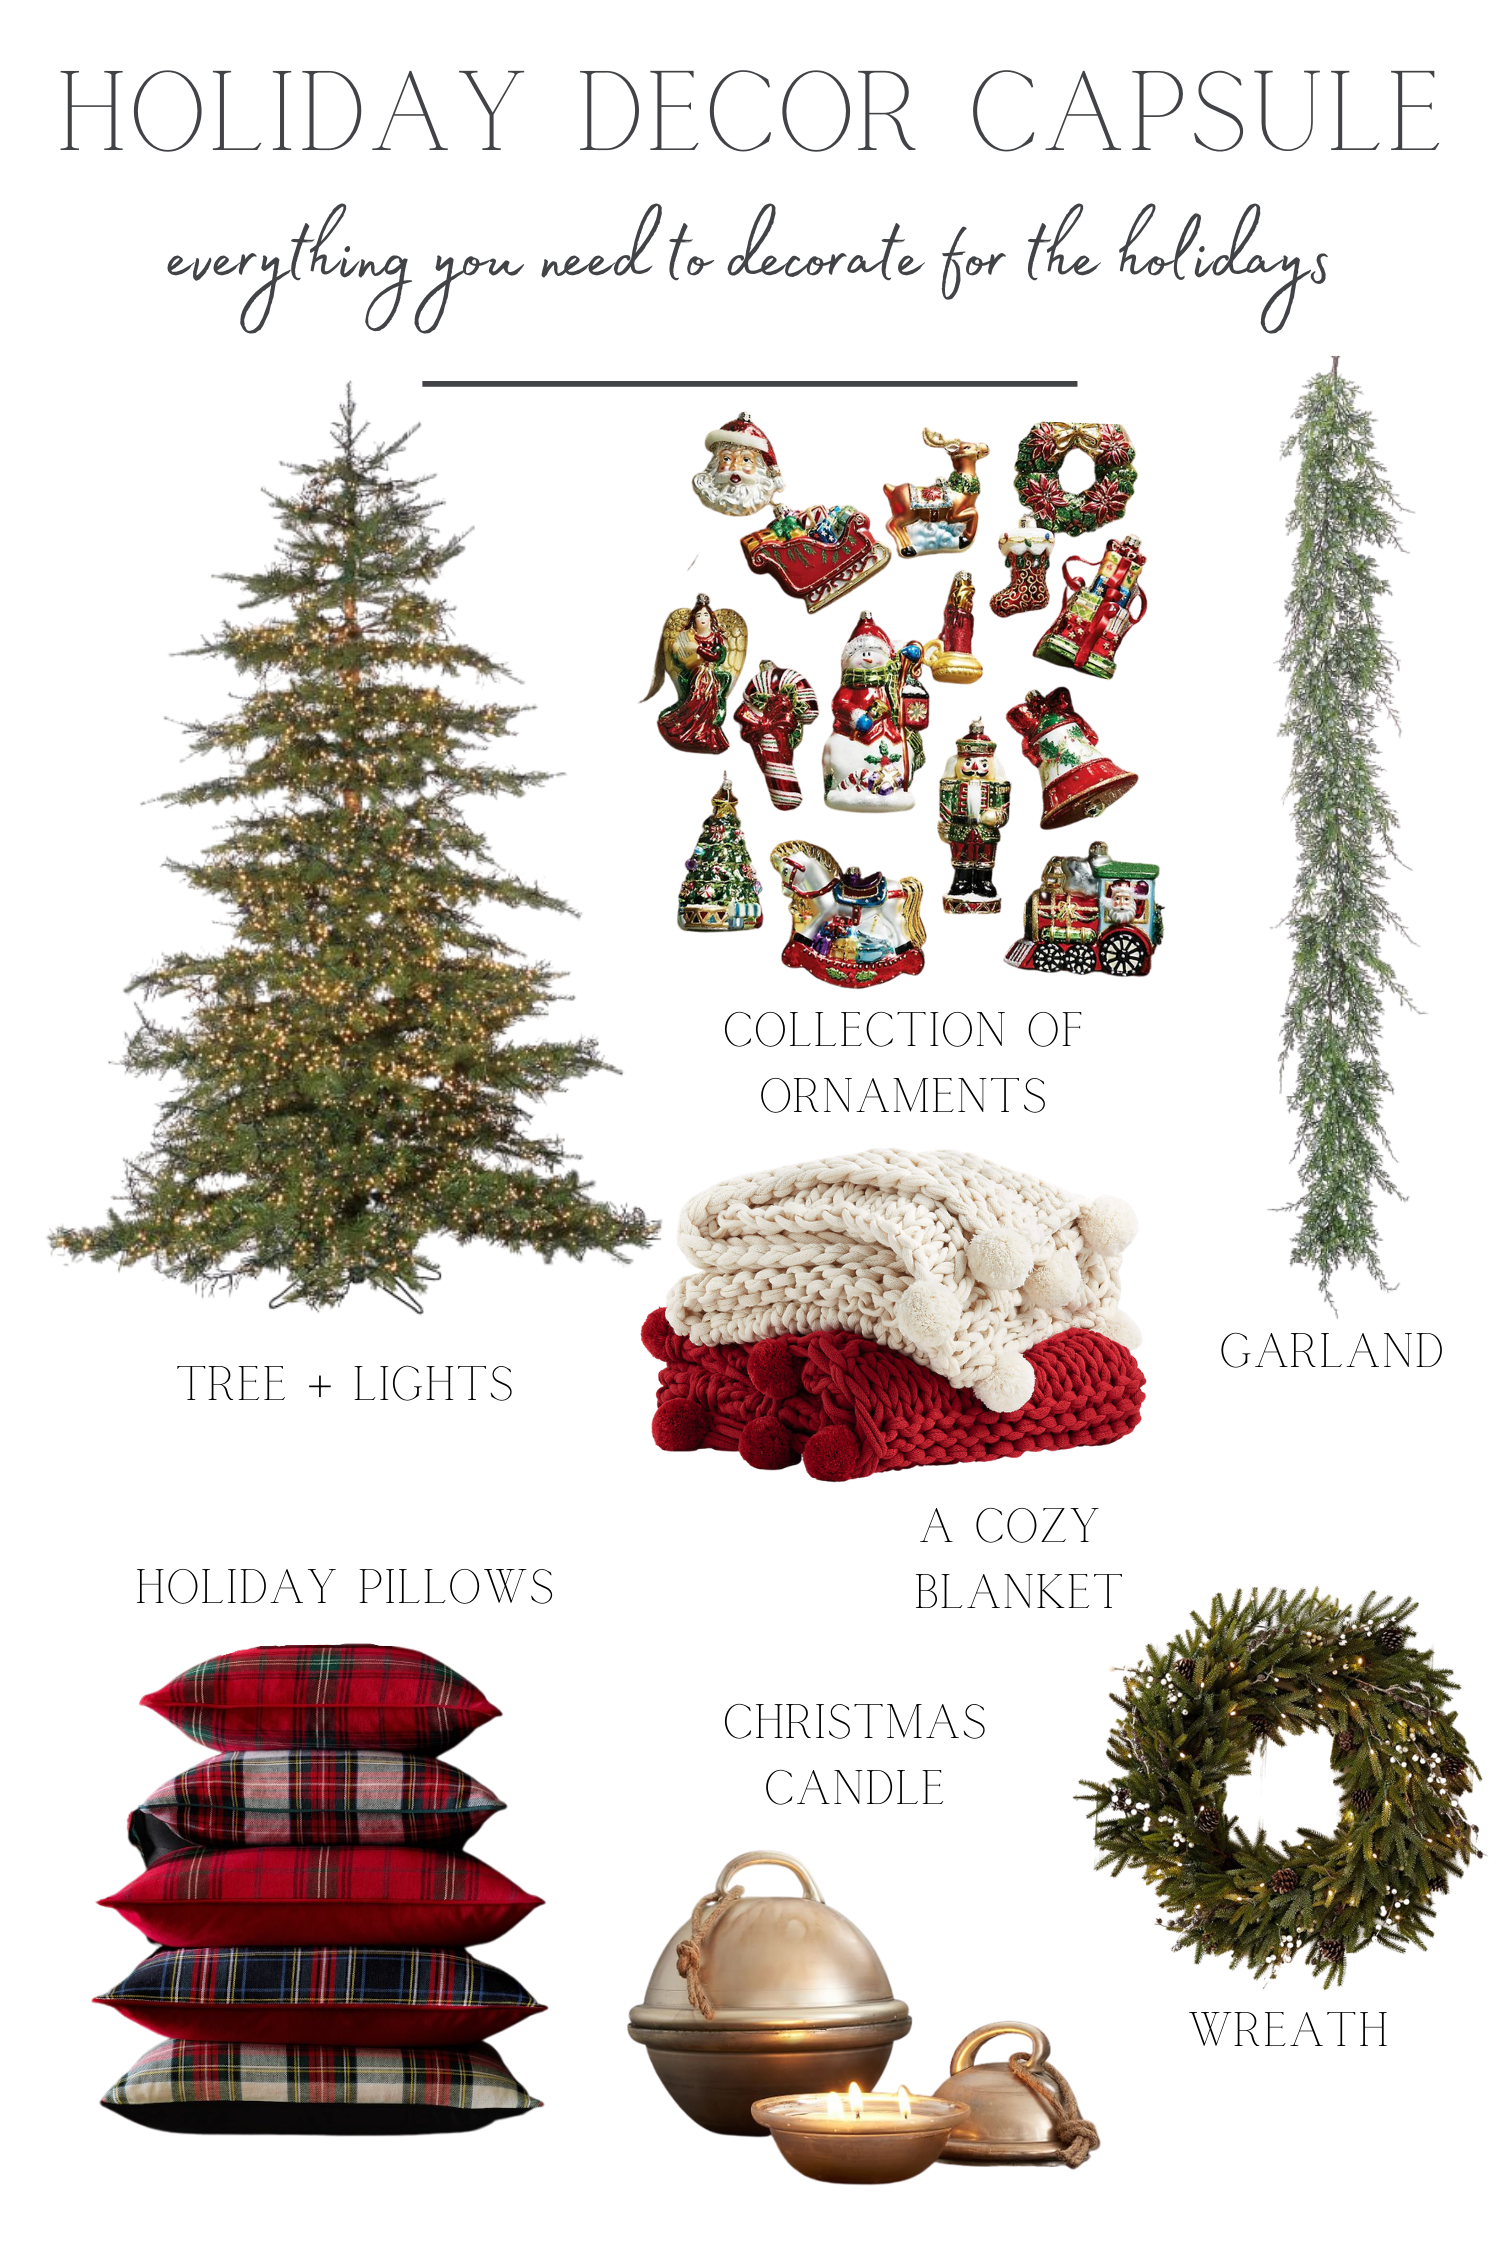 Christmas Decor Capsule All Of The Essentials You Ll Need To Decorate For The Holidays Making It In The Mountains In 2020 Christmas Decorations Christmas Decor Diy Handmade Holiday